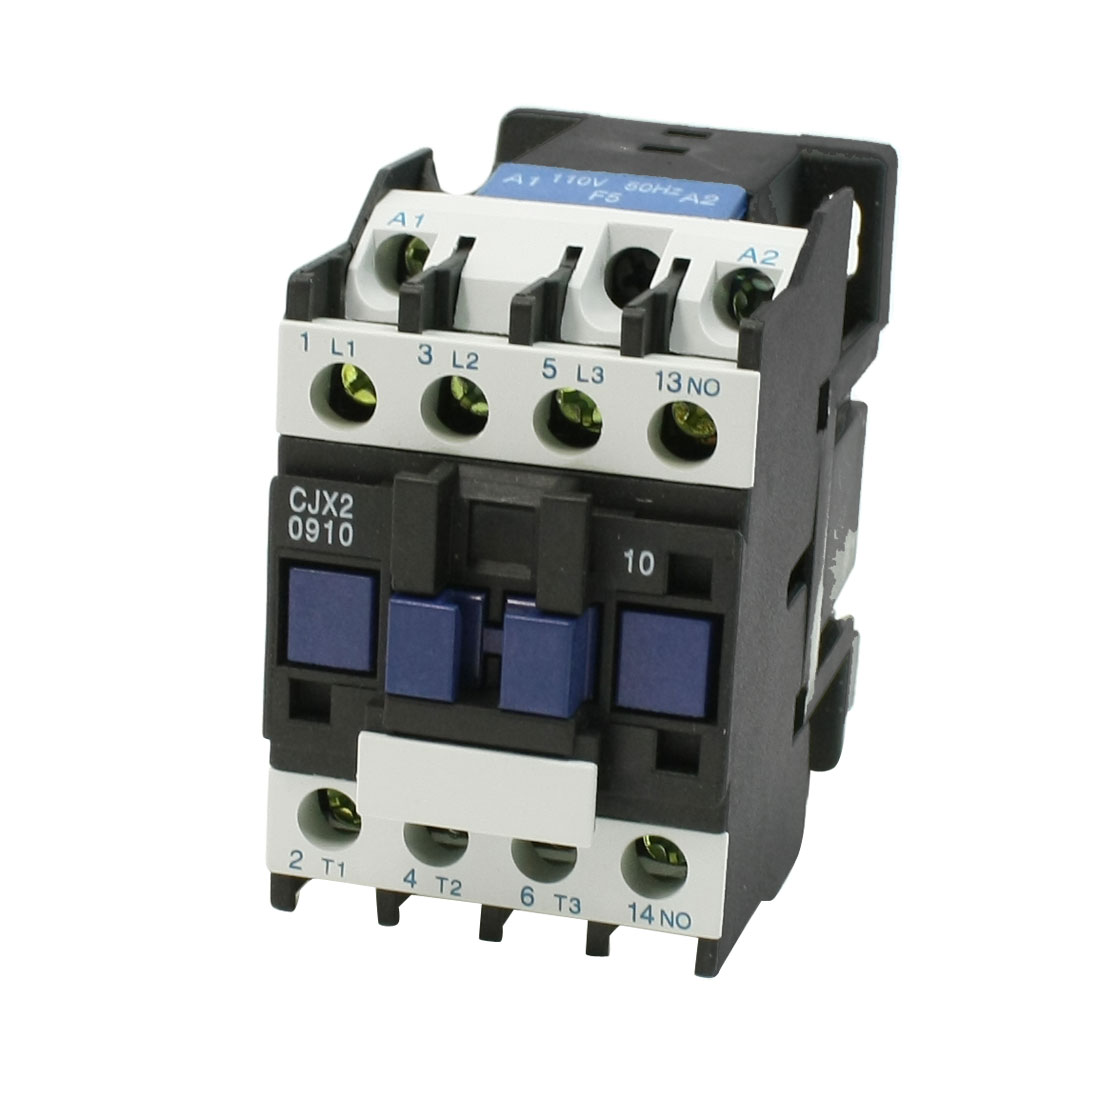 CJX2-09 Coil Voltage 3 Phase 1NO Motor Control AC Contactor 660V 25A